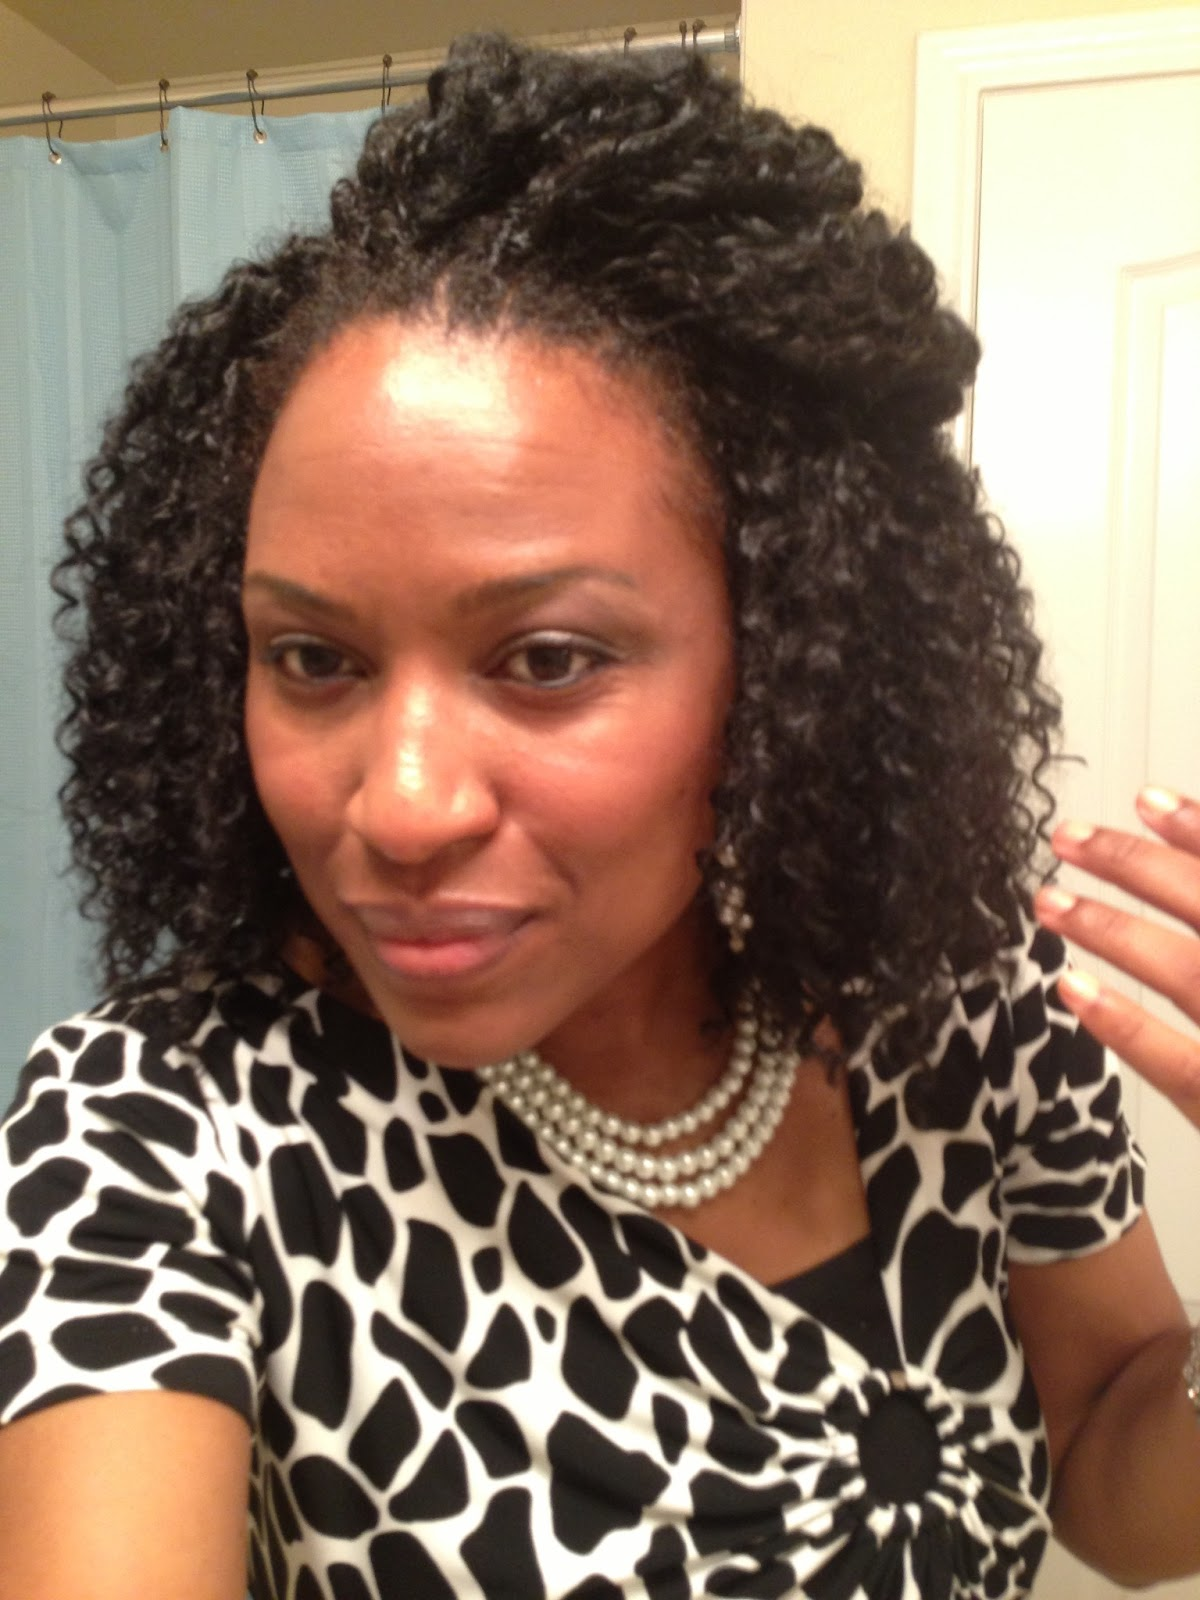 Crochet Hair Upkeep : HEALTHY HAPPY HAIR: Get Maximum Wear out of your Crochet Braids:My 8 ...